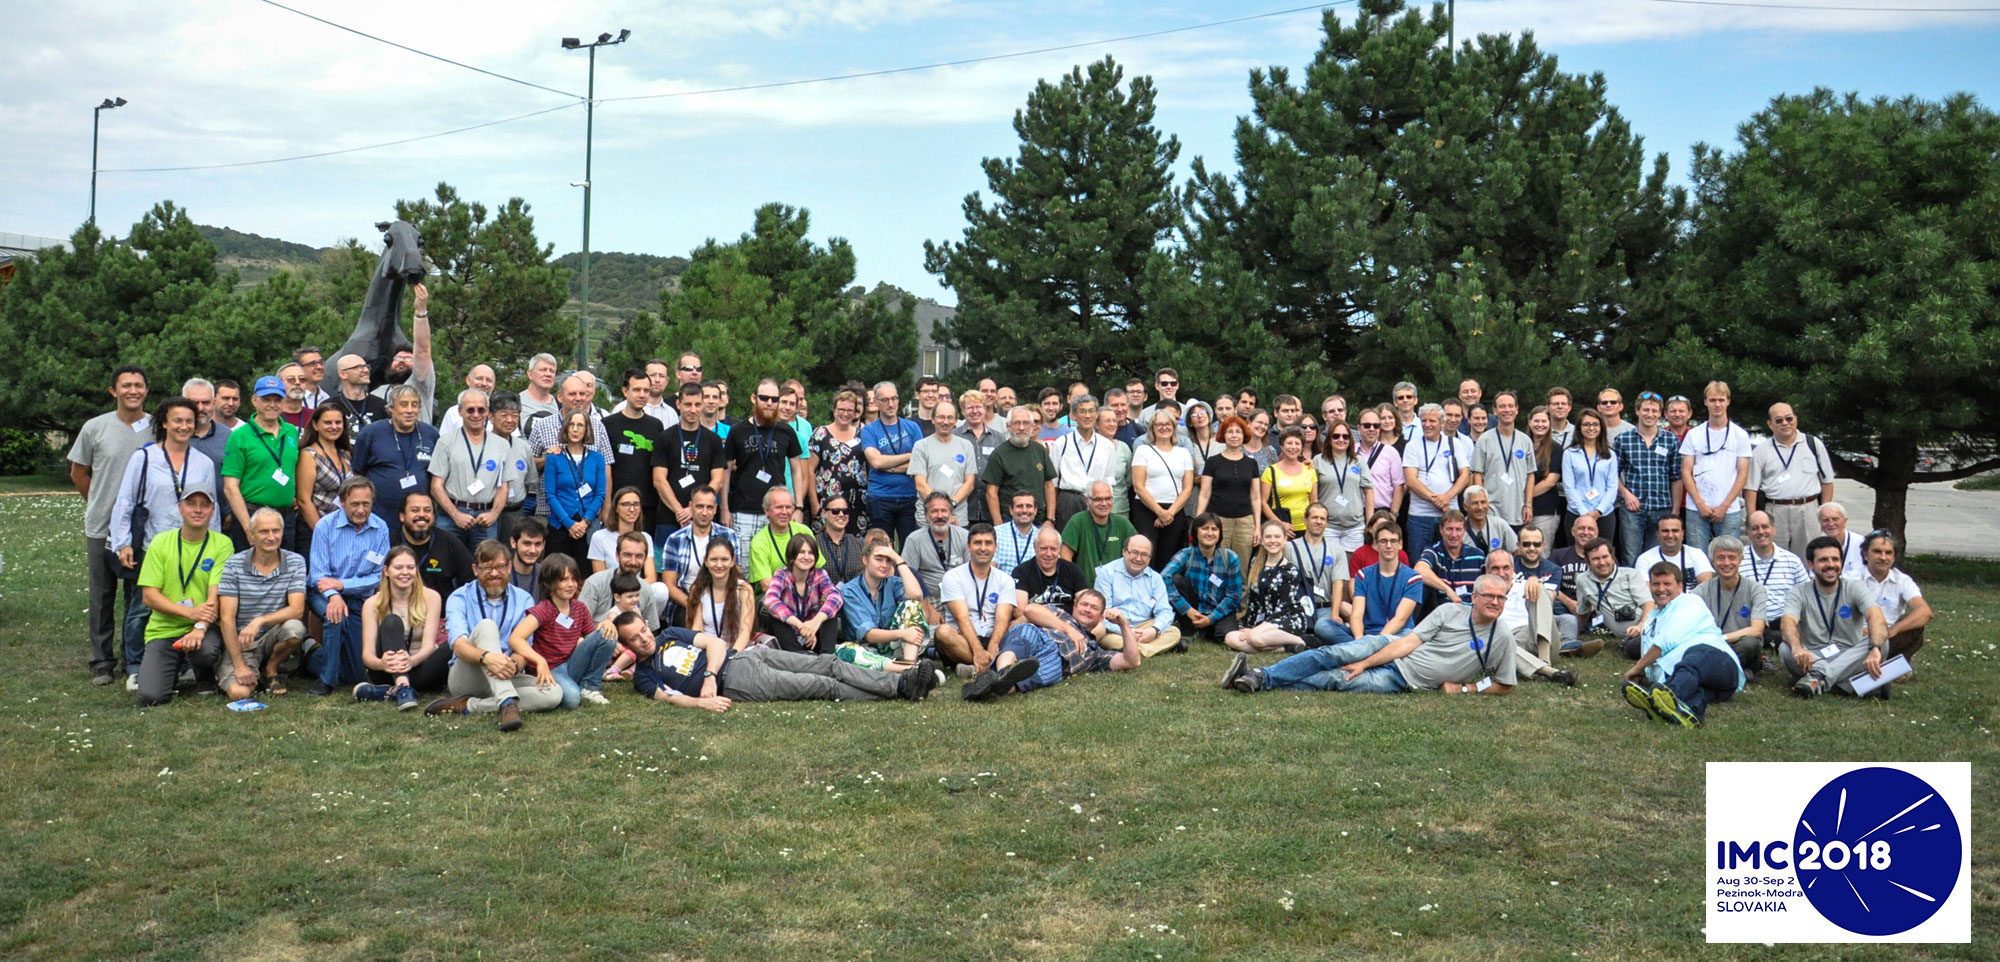 IMC2018 Group Photo